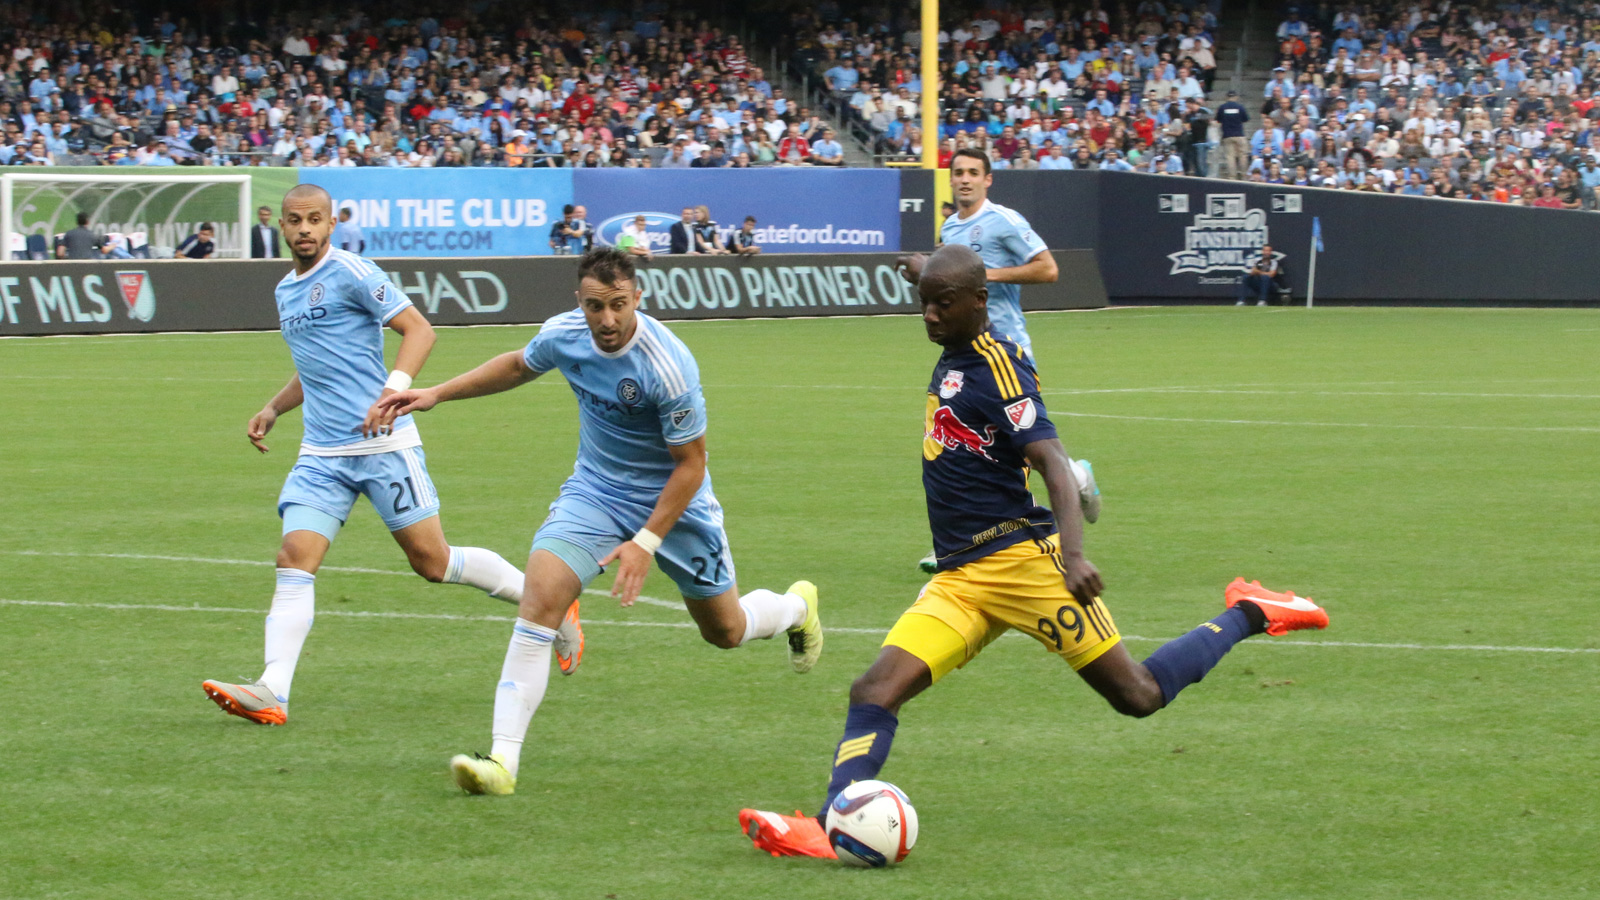 New York Red Bulls striker Bradley Wright-Phillips (99) beats NYCFC defender R.J. Allen (27) and puts a strike on goal during the second half of their June 28 match at Yankee Stadium.